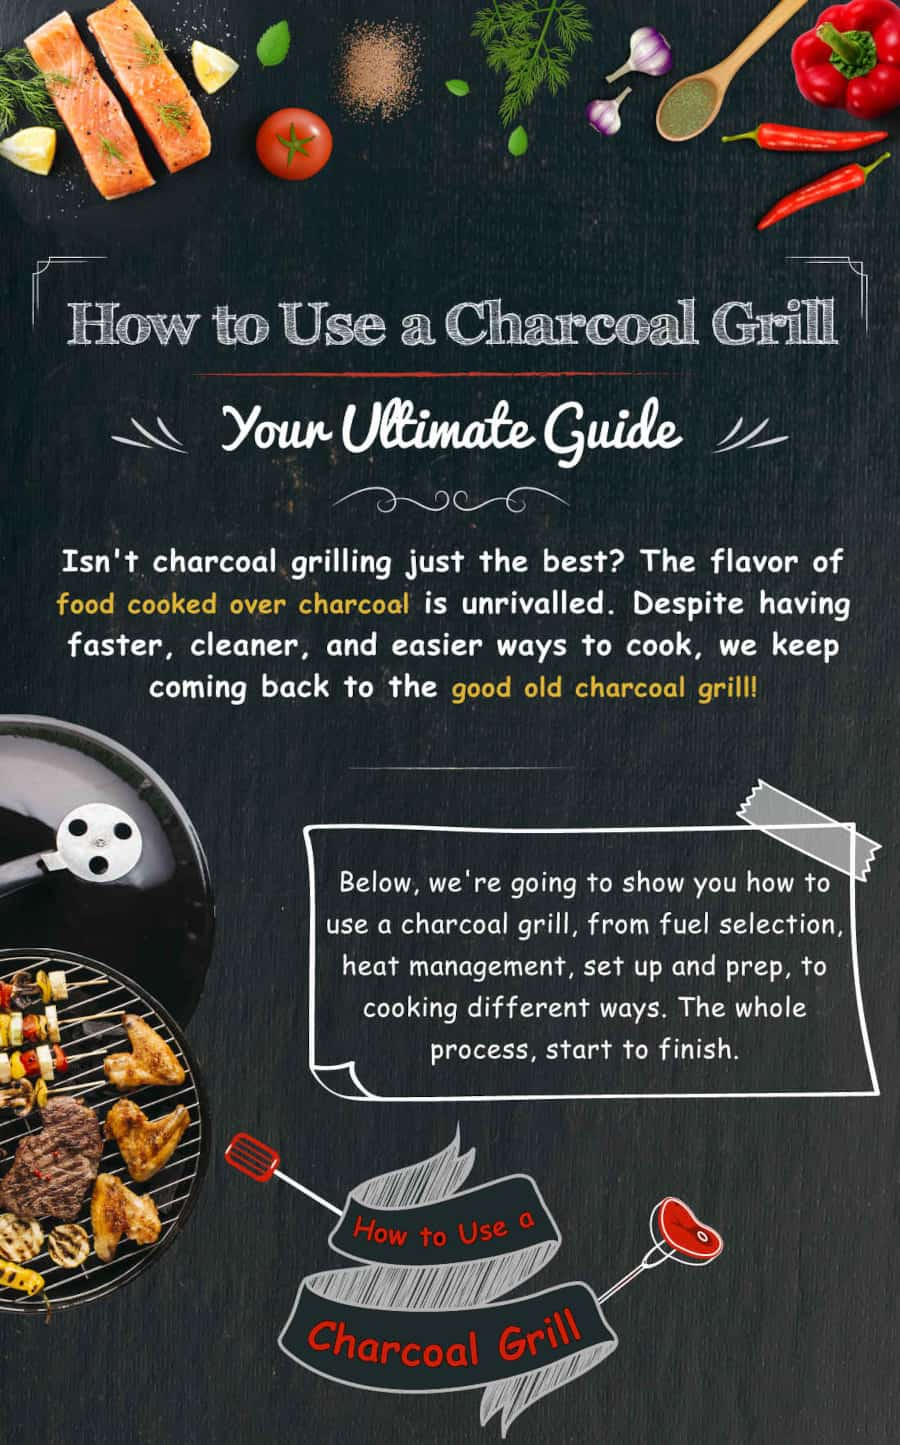 Graphic with text introducing a how to use a charcoal grill guide